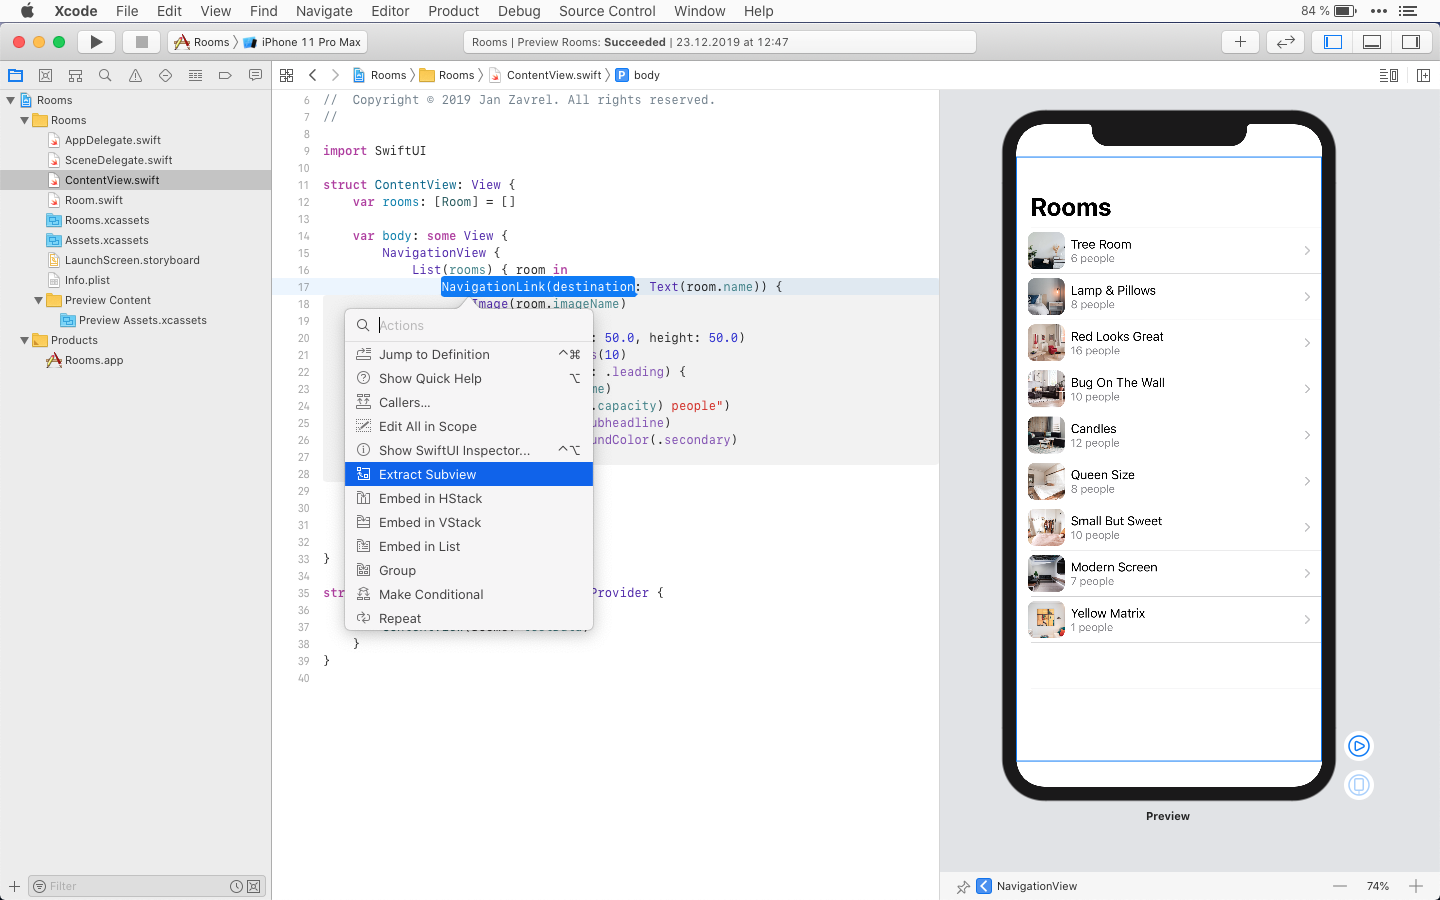 https://res.cloudinary.com/zavrelj/image/upload/v1578453215/codewithjan/swiftui-by-examples/swiftui-by-examples-34.png